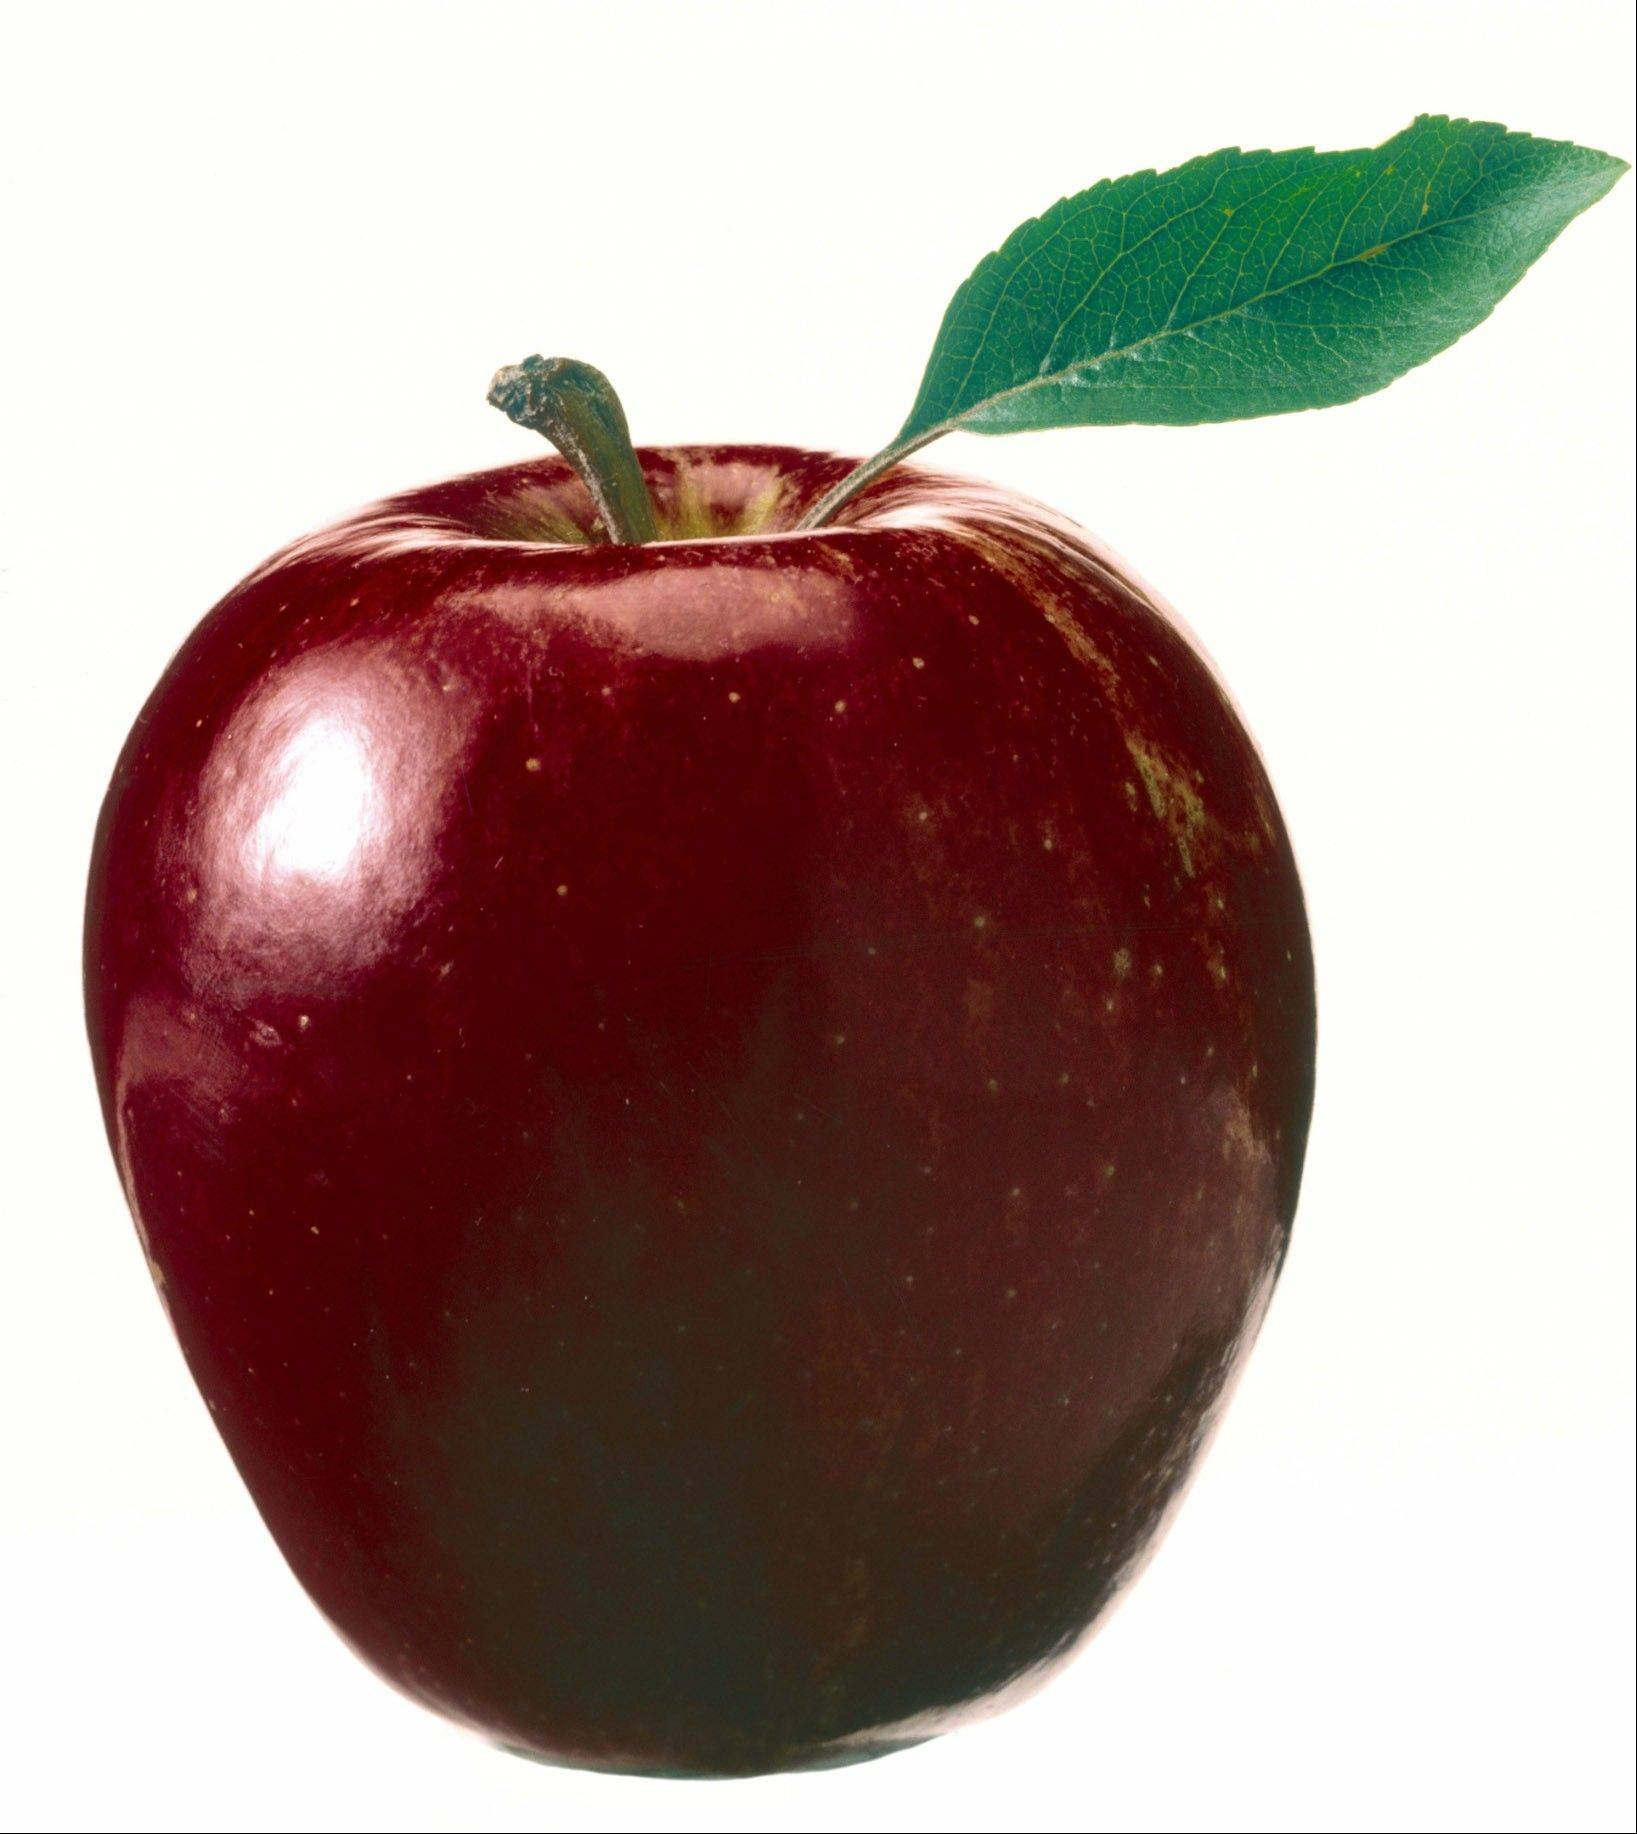 Apple pectic binds to cholesterol in the stomach and helps to remove it from the body, according to experts.